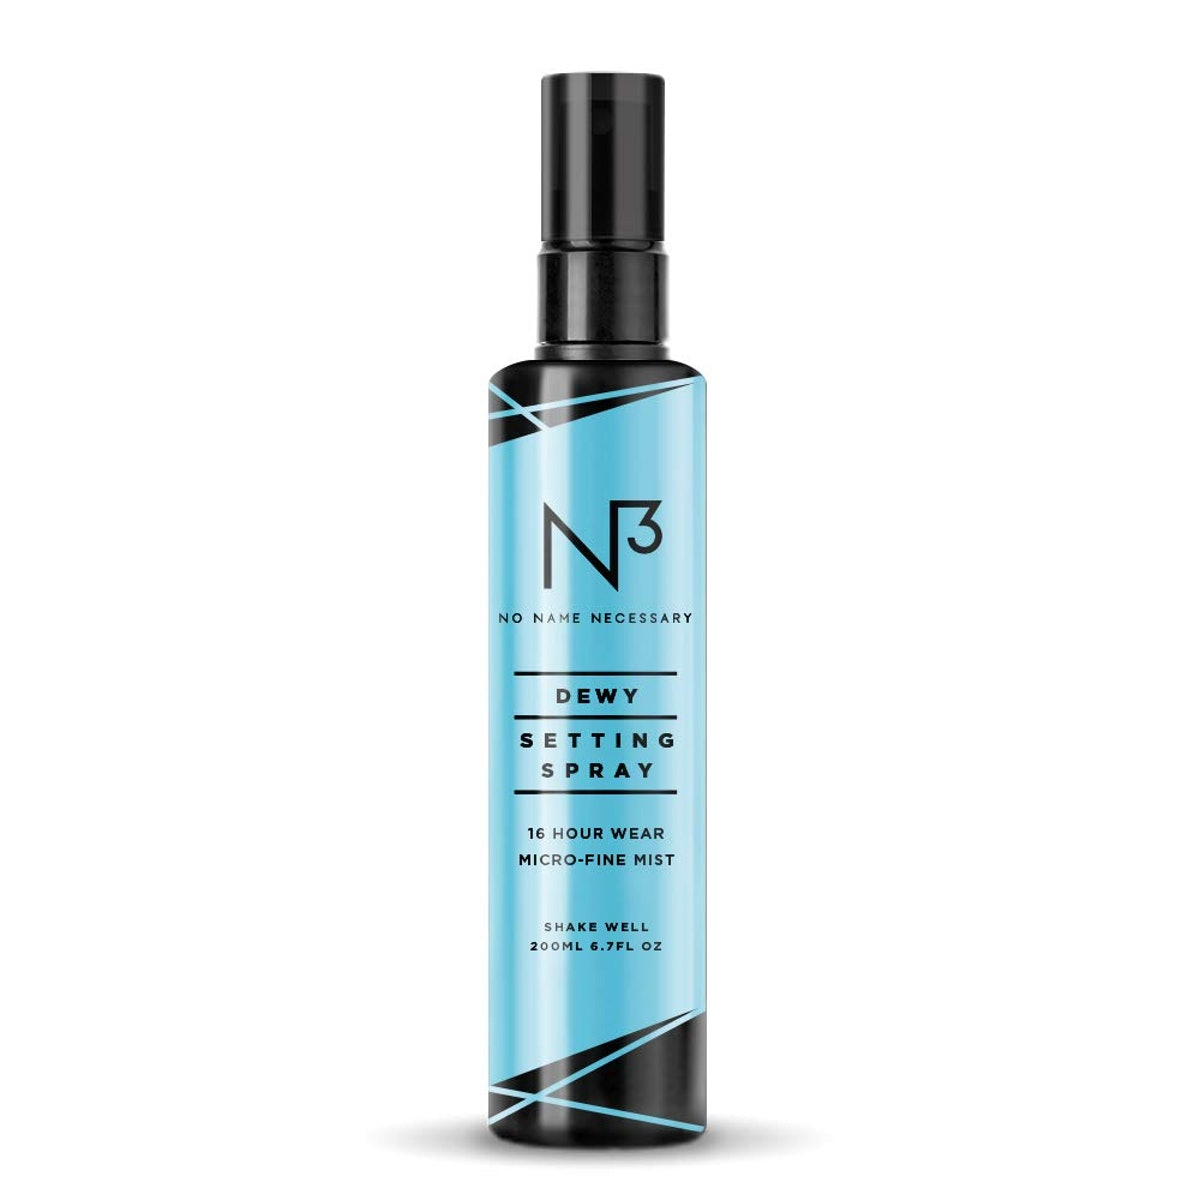 N3 No Name Necessary Dewy Makeup Setting Spray